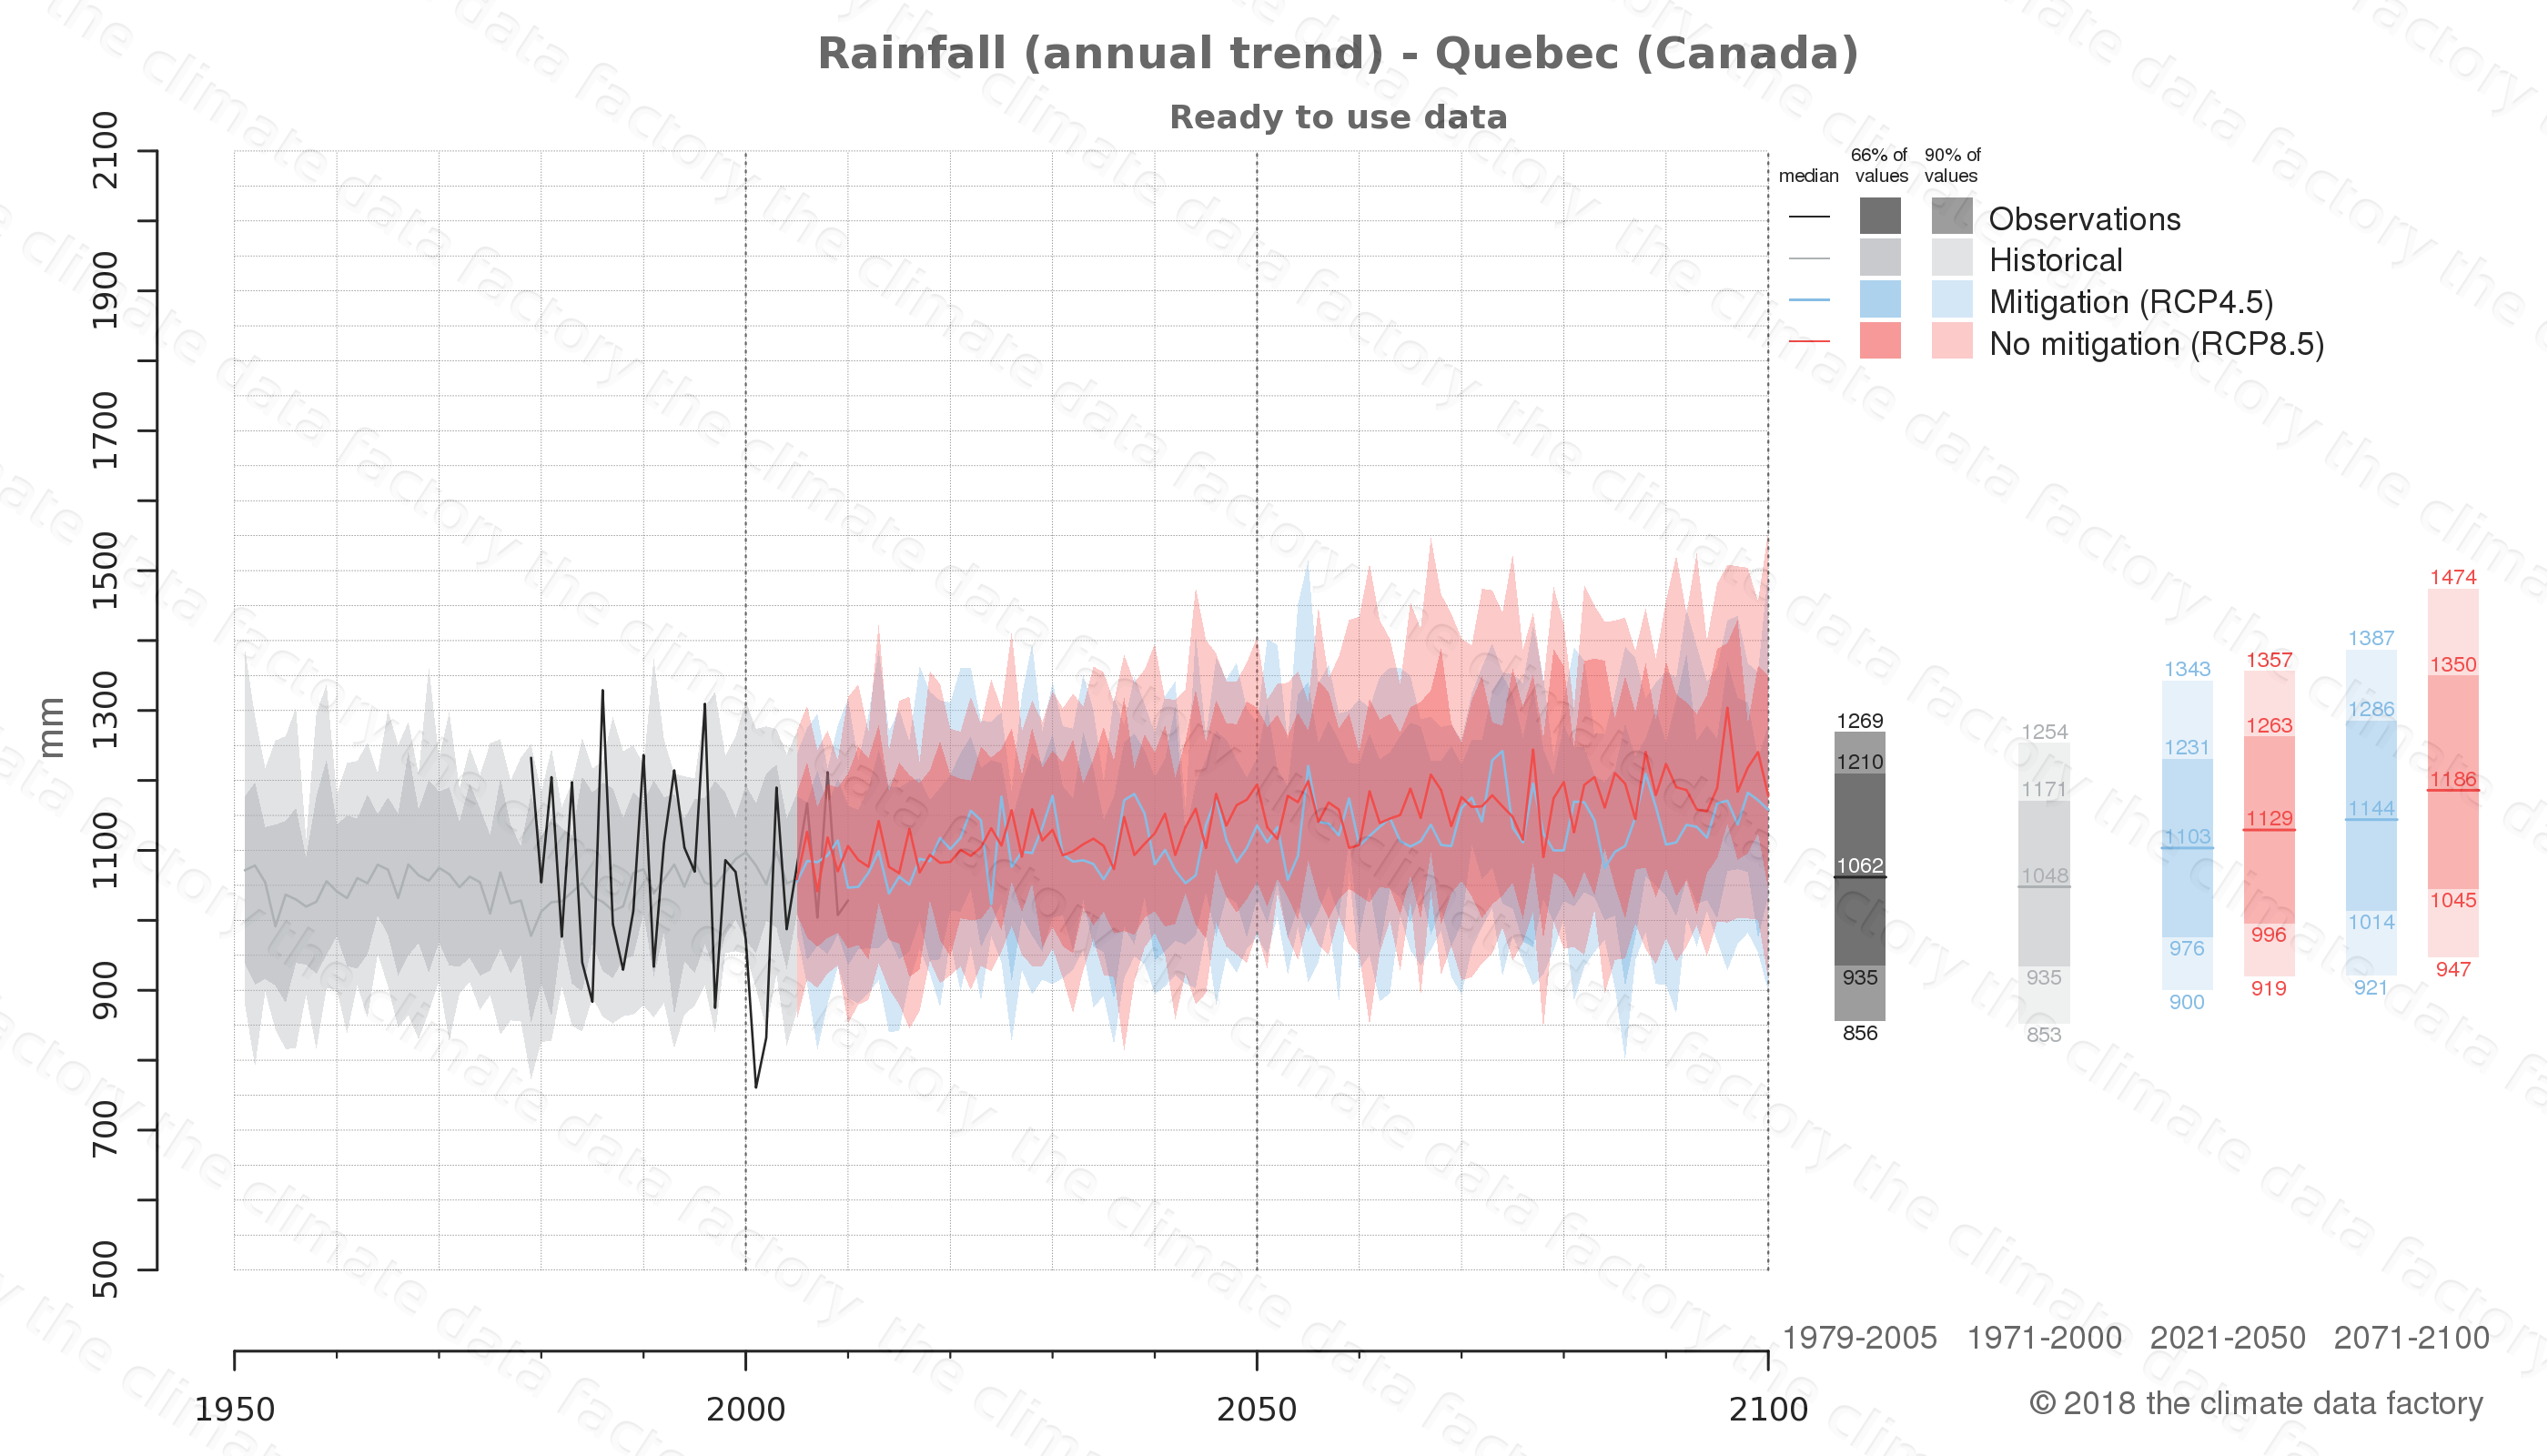 climate change data policy adaptation climate graph city data rainfall quebec canada